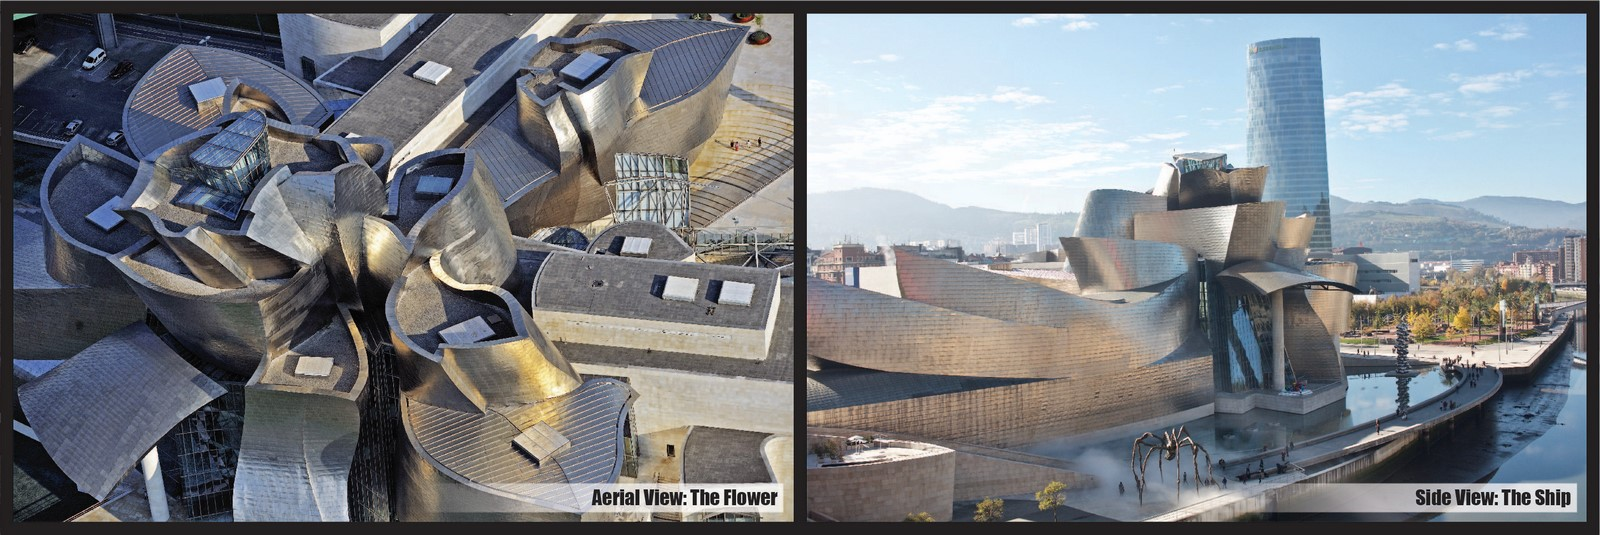 10 Things you did not know about Guggenheim Museum, Bilbao - Sheet3